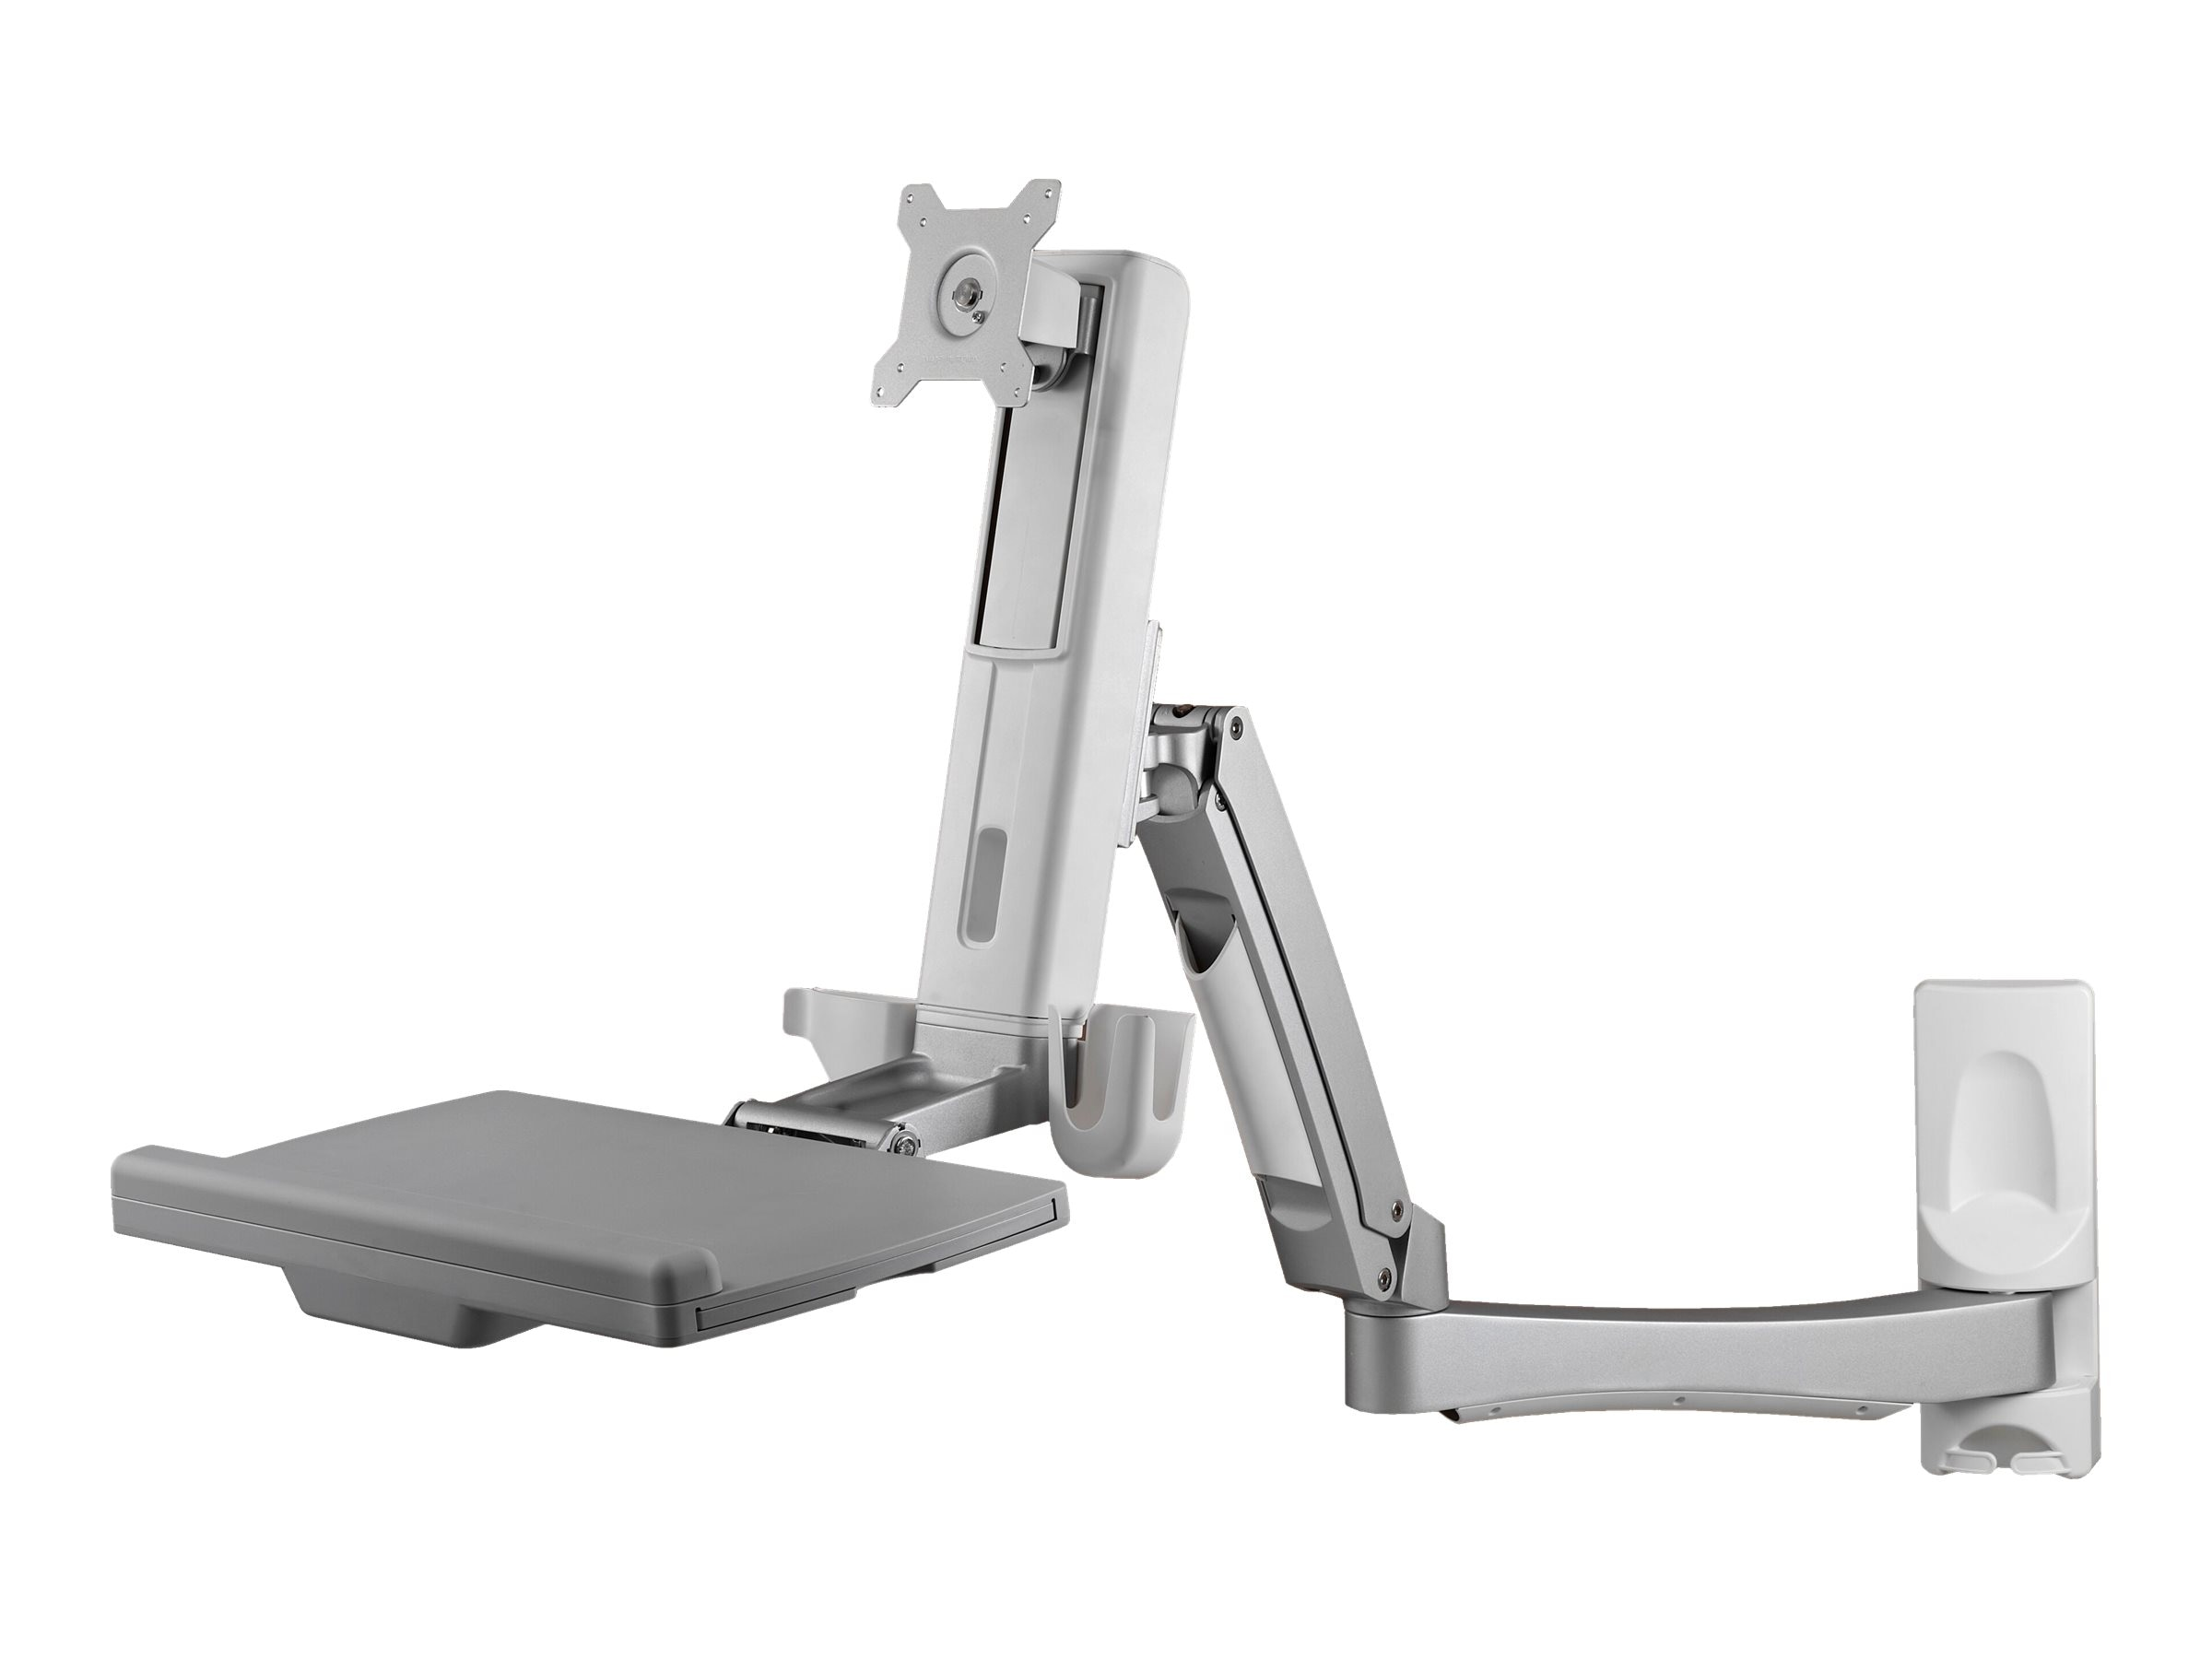 Atdec Wall Mounted Sit-to-stand Workstation, A-STSWW, 31639333, Stands & Mounts - AV